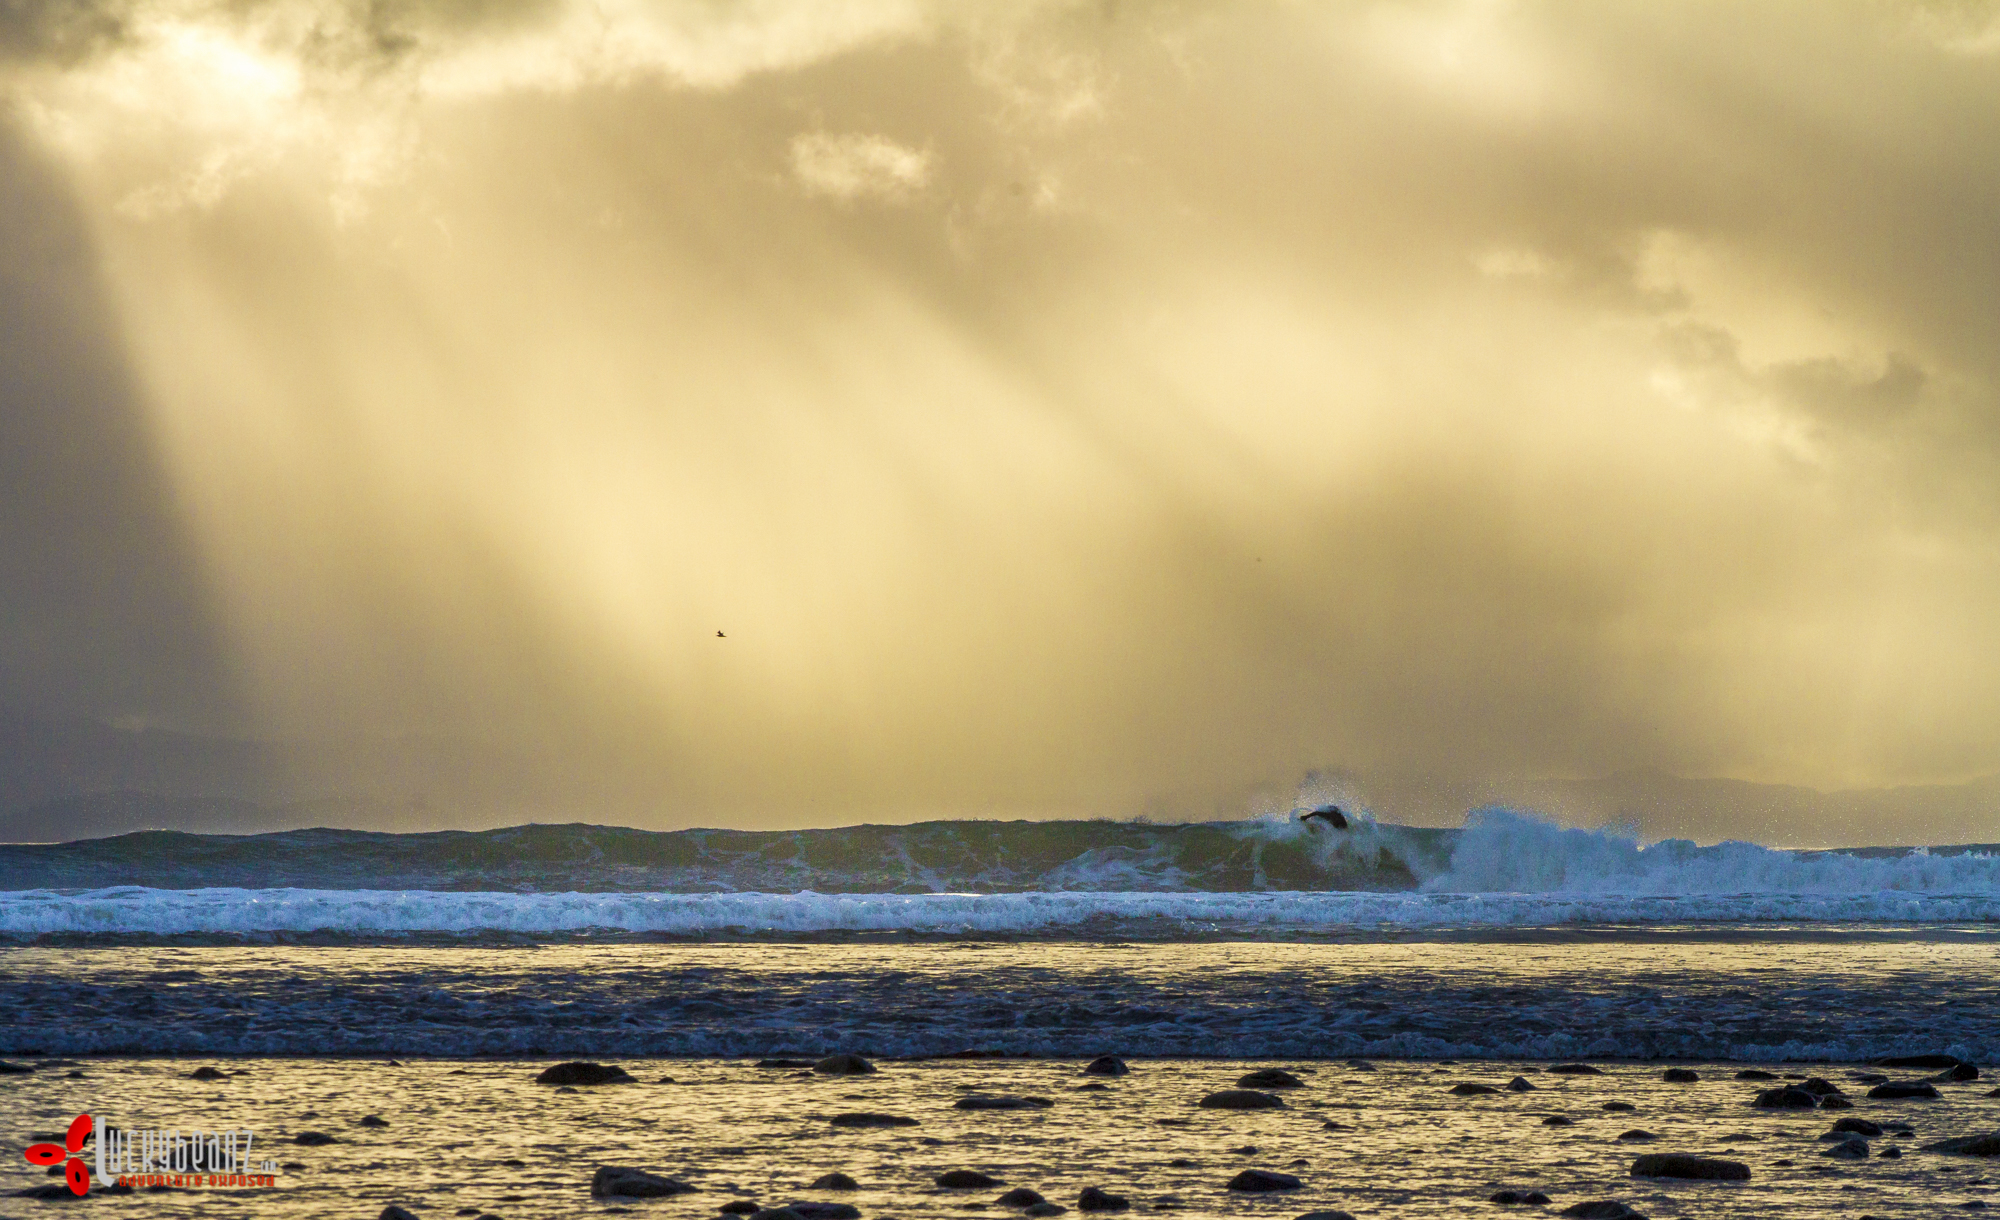 Some decent waves to be had.